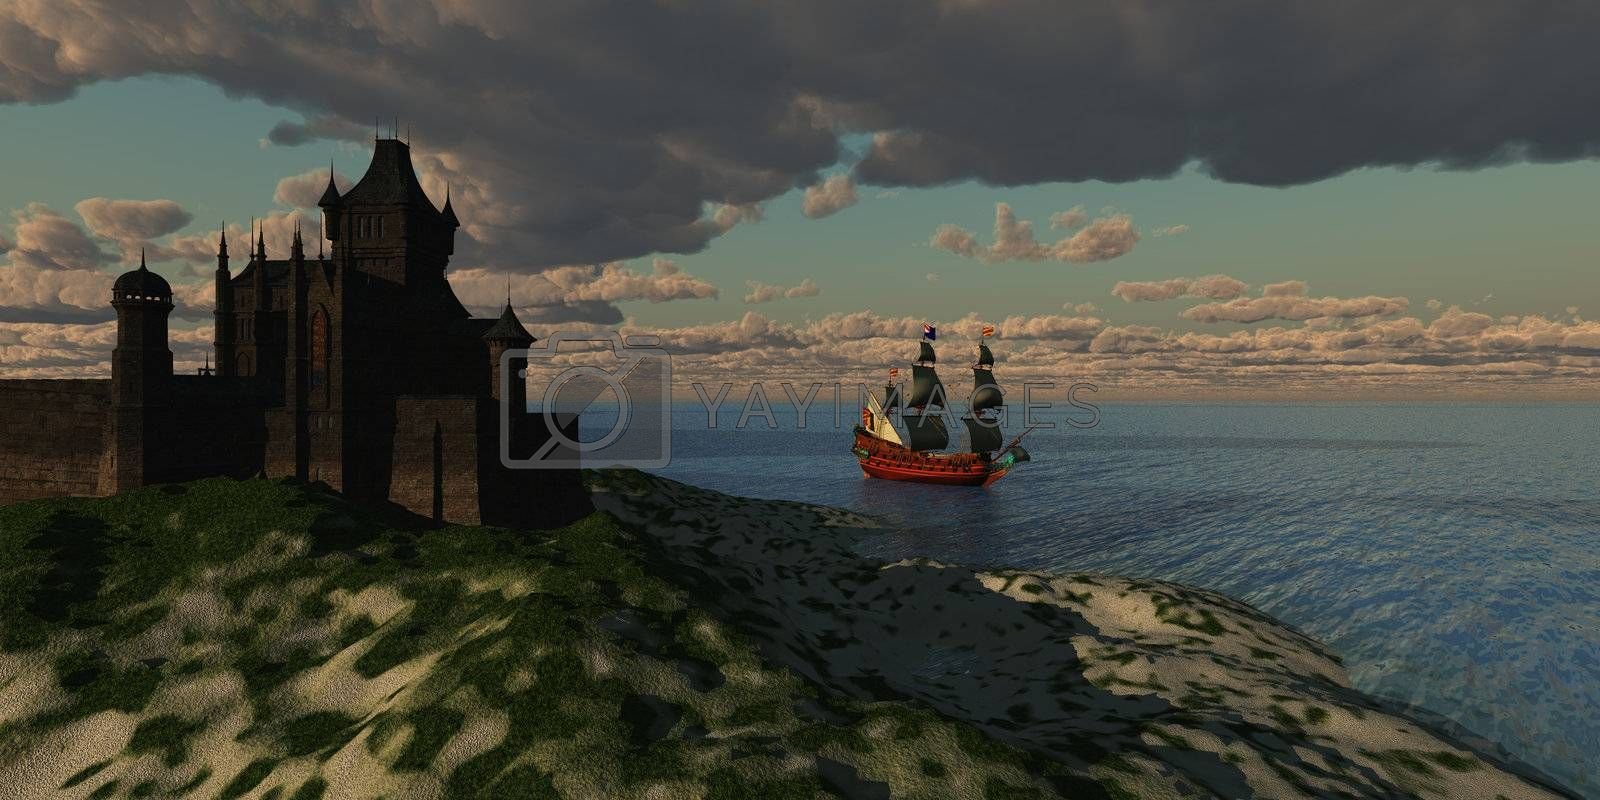 A beautiful galleon sails by an imposing castle on the shore of a new country.